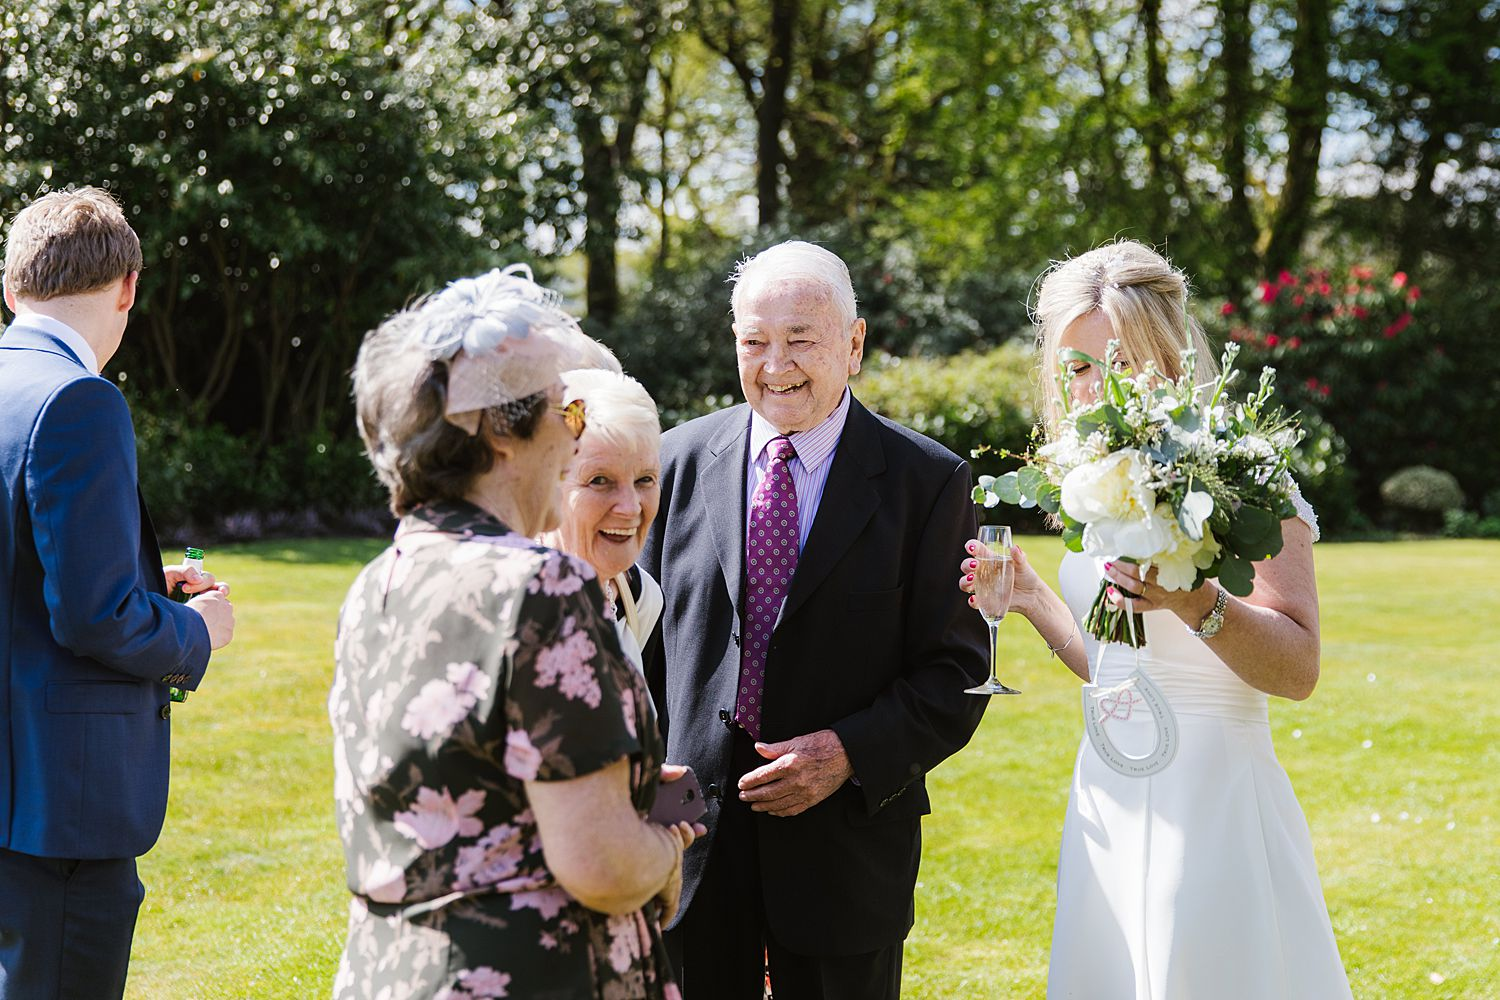 Bride with bouquet chats to guests, bouquet from brackens florist in Windermere, venue Storrs Hall Hotel